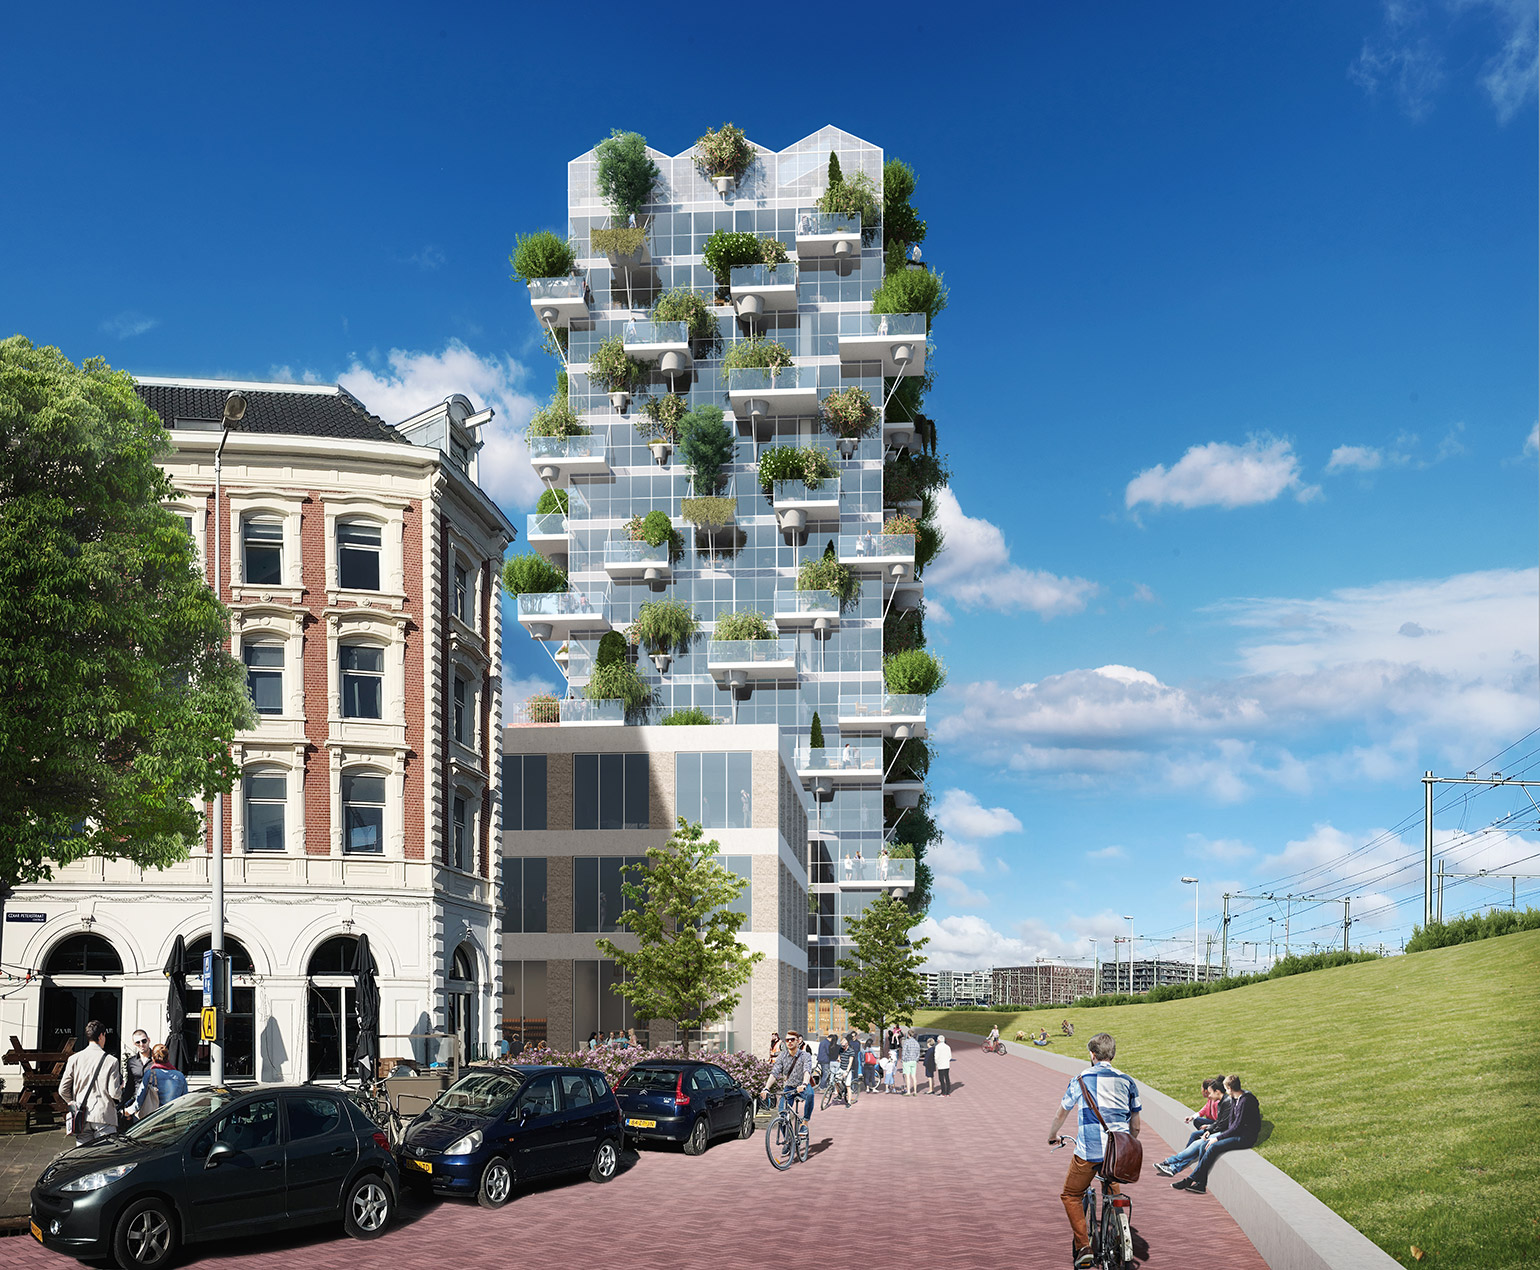 MVRDV Designed Green and People-Focused Residential Complex in Amsterdam